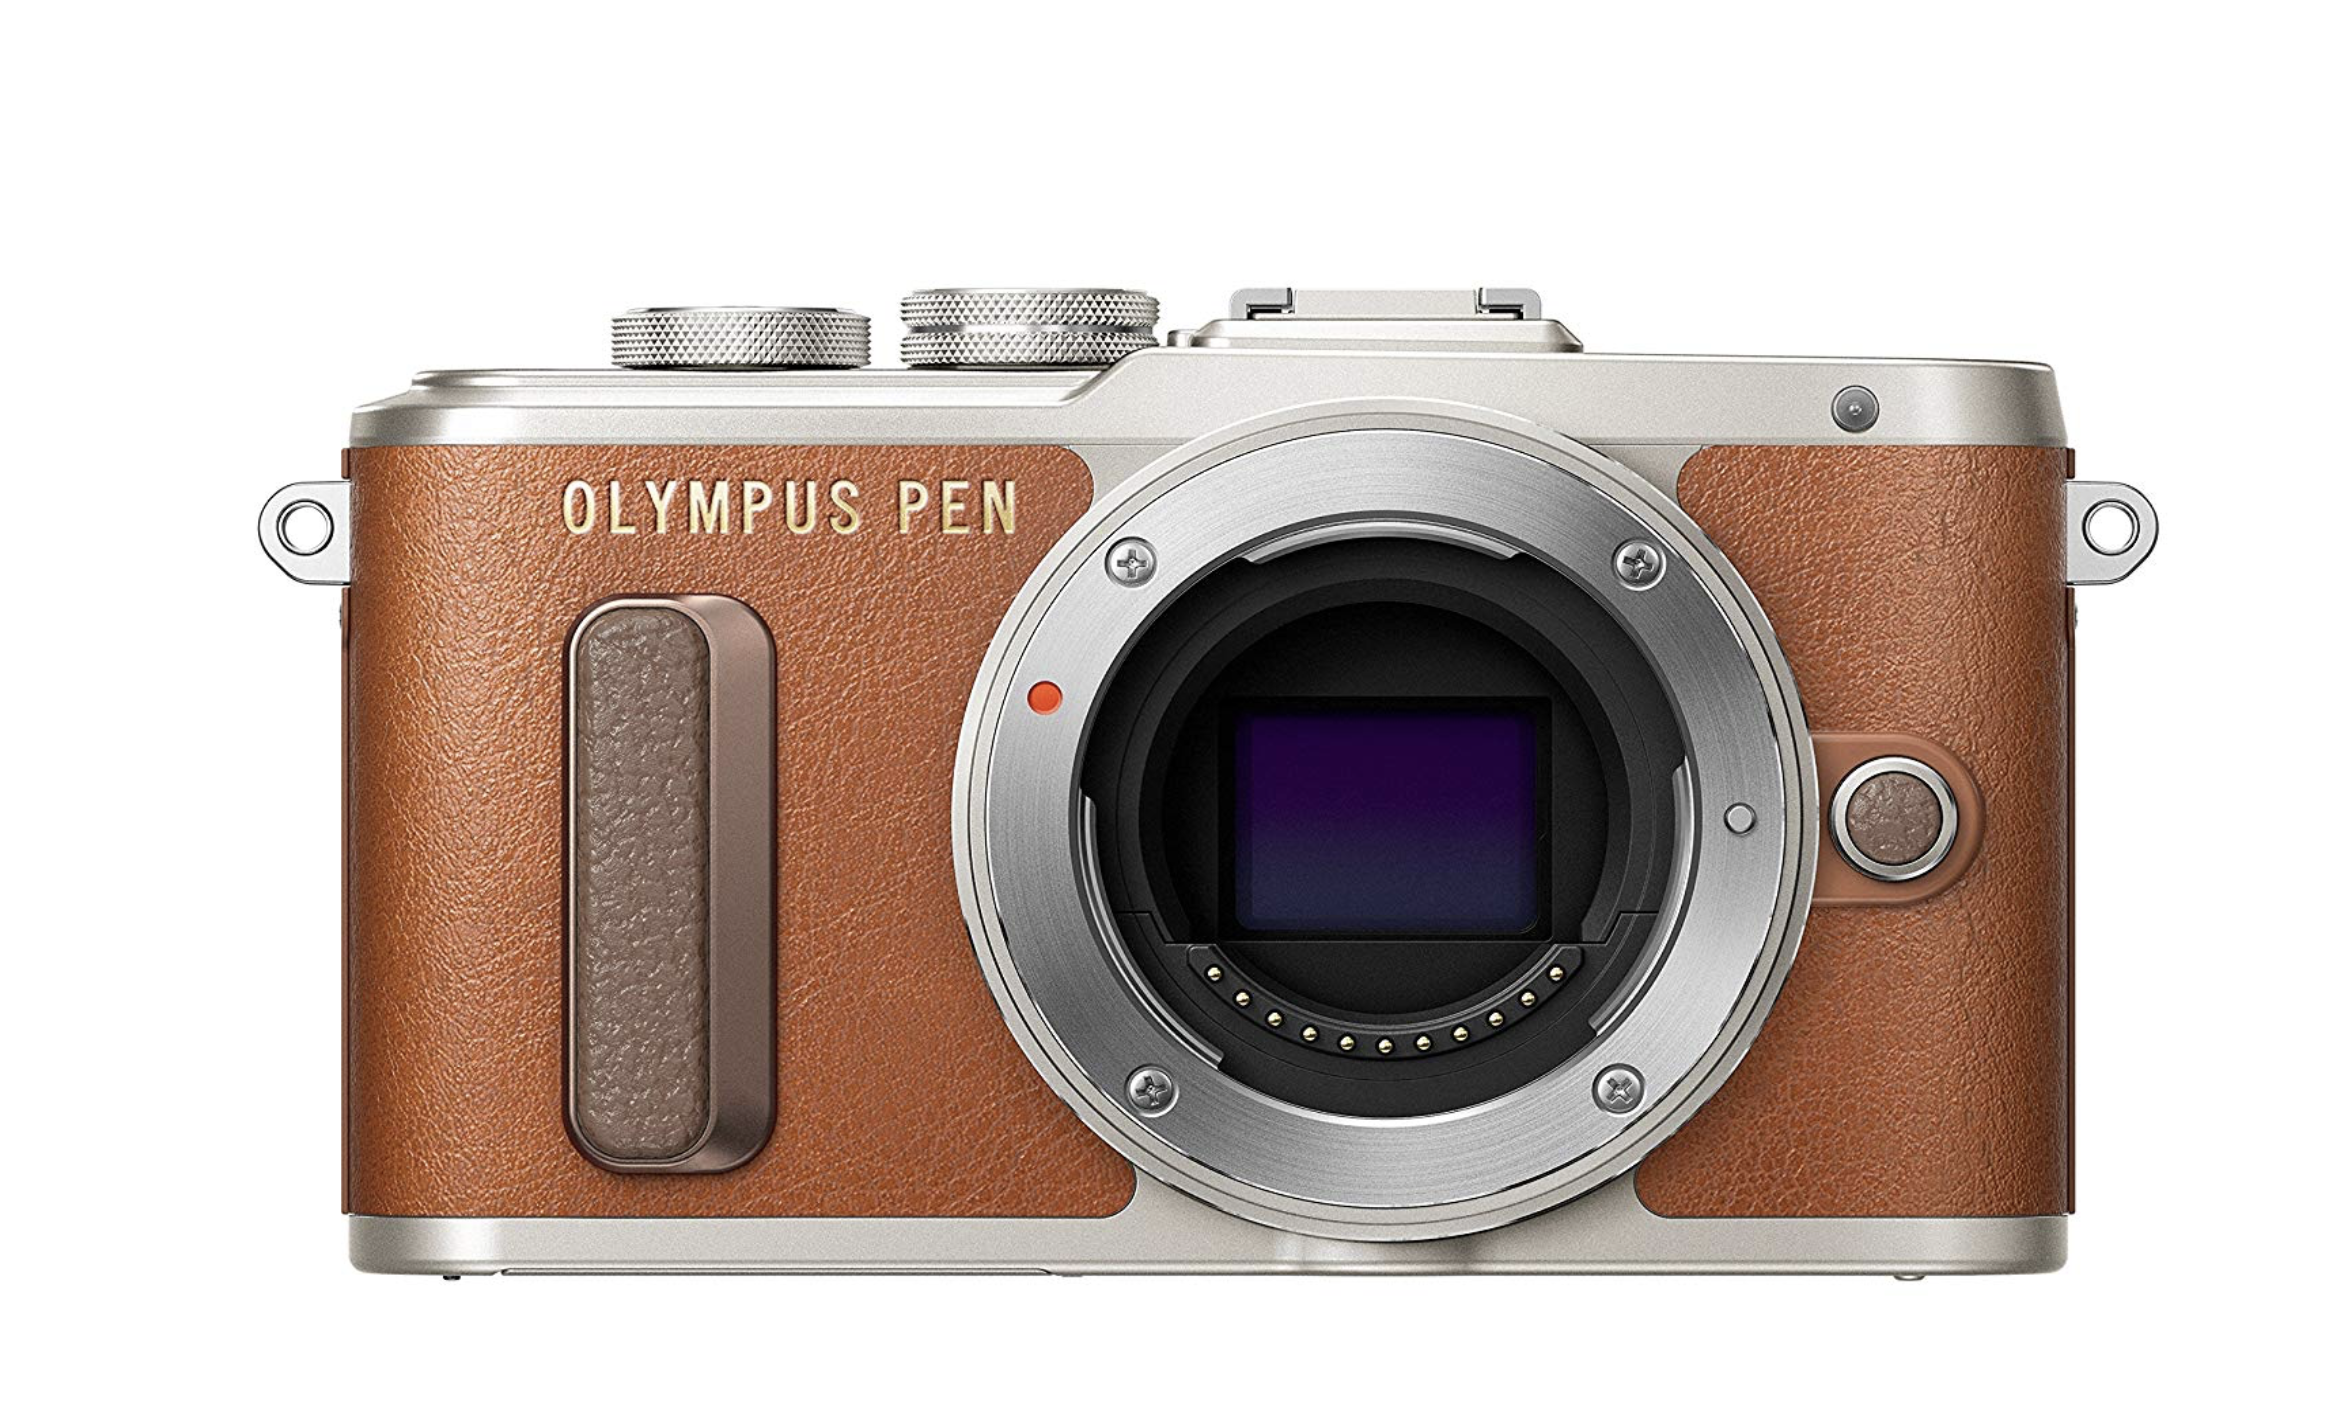 Olympus Pen PL8 - Olympus are at least 100x sexier than Lumix, let's be honest. This camera is small and stylish, and under budget.